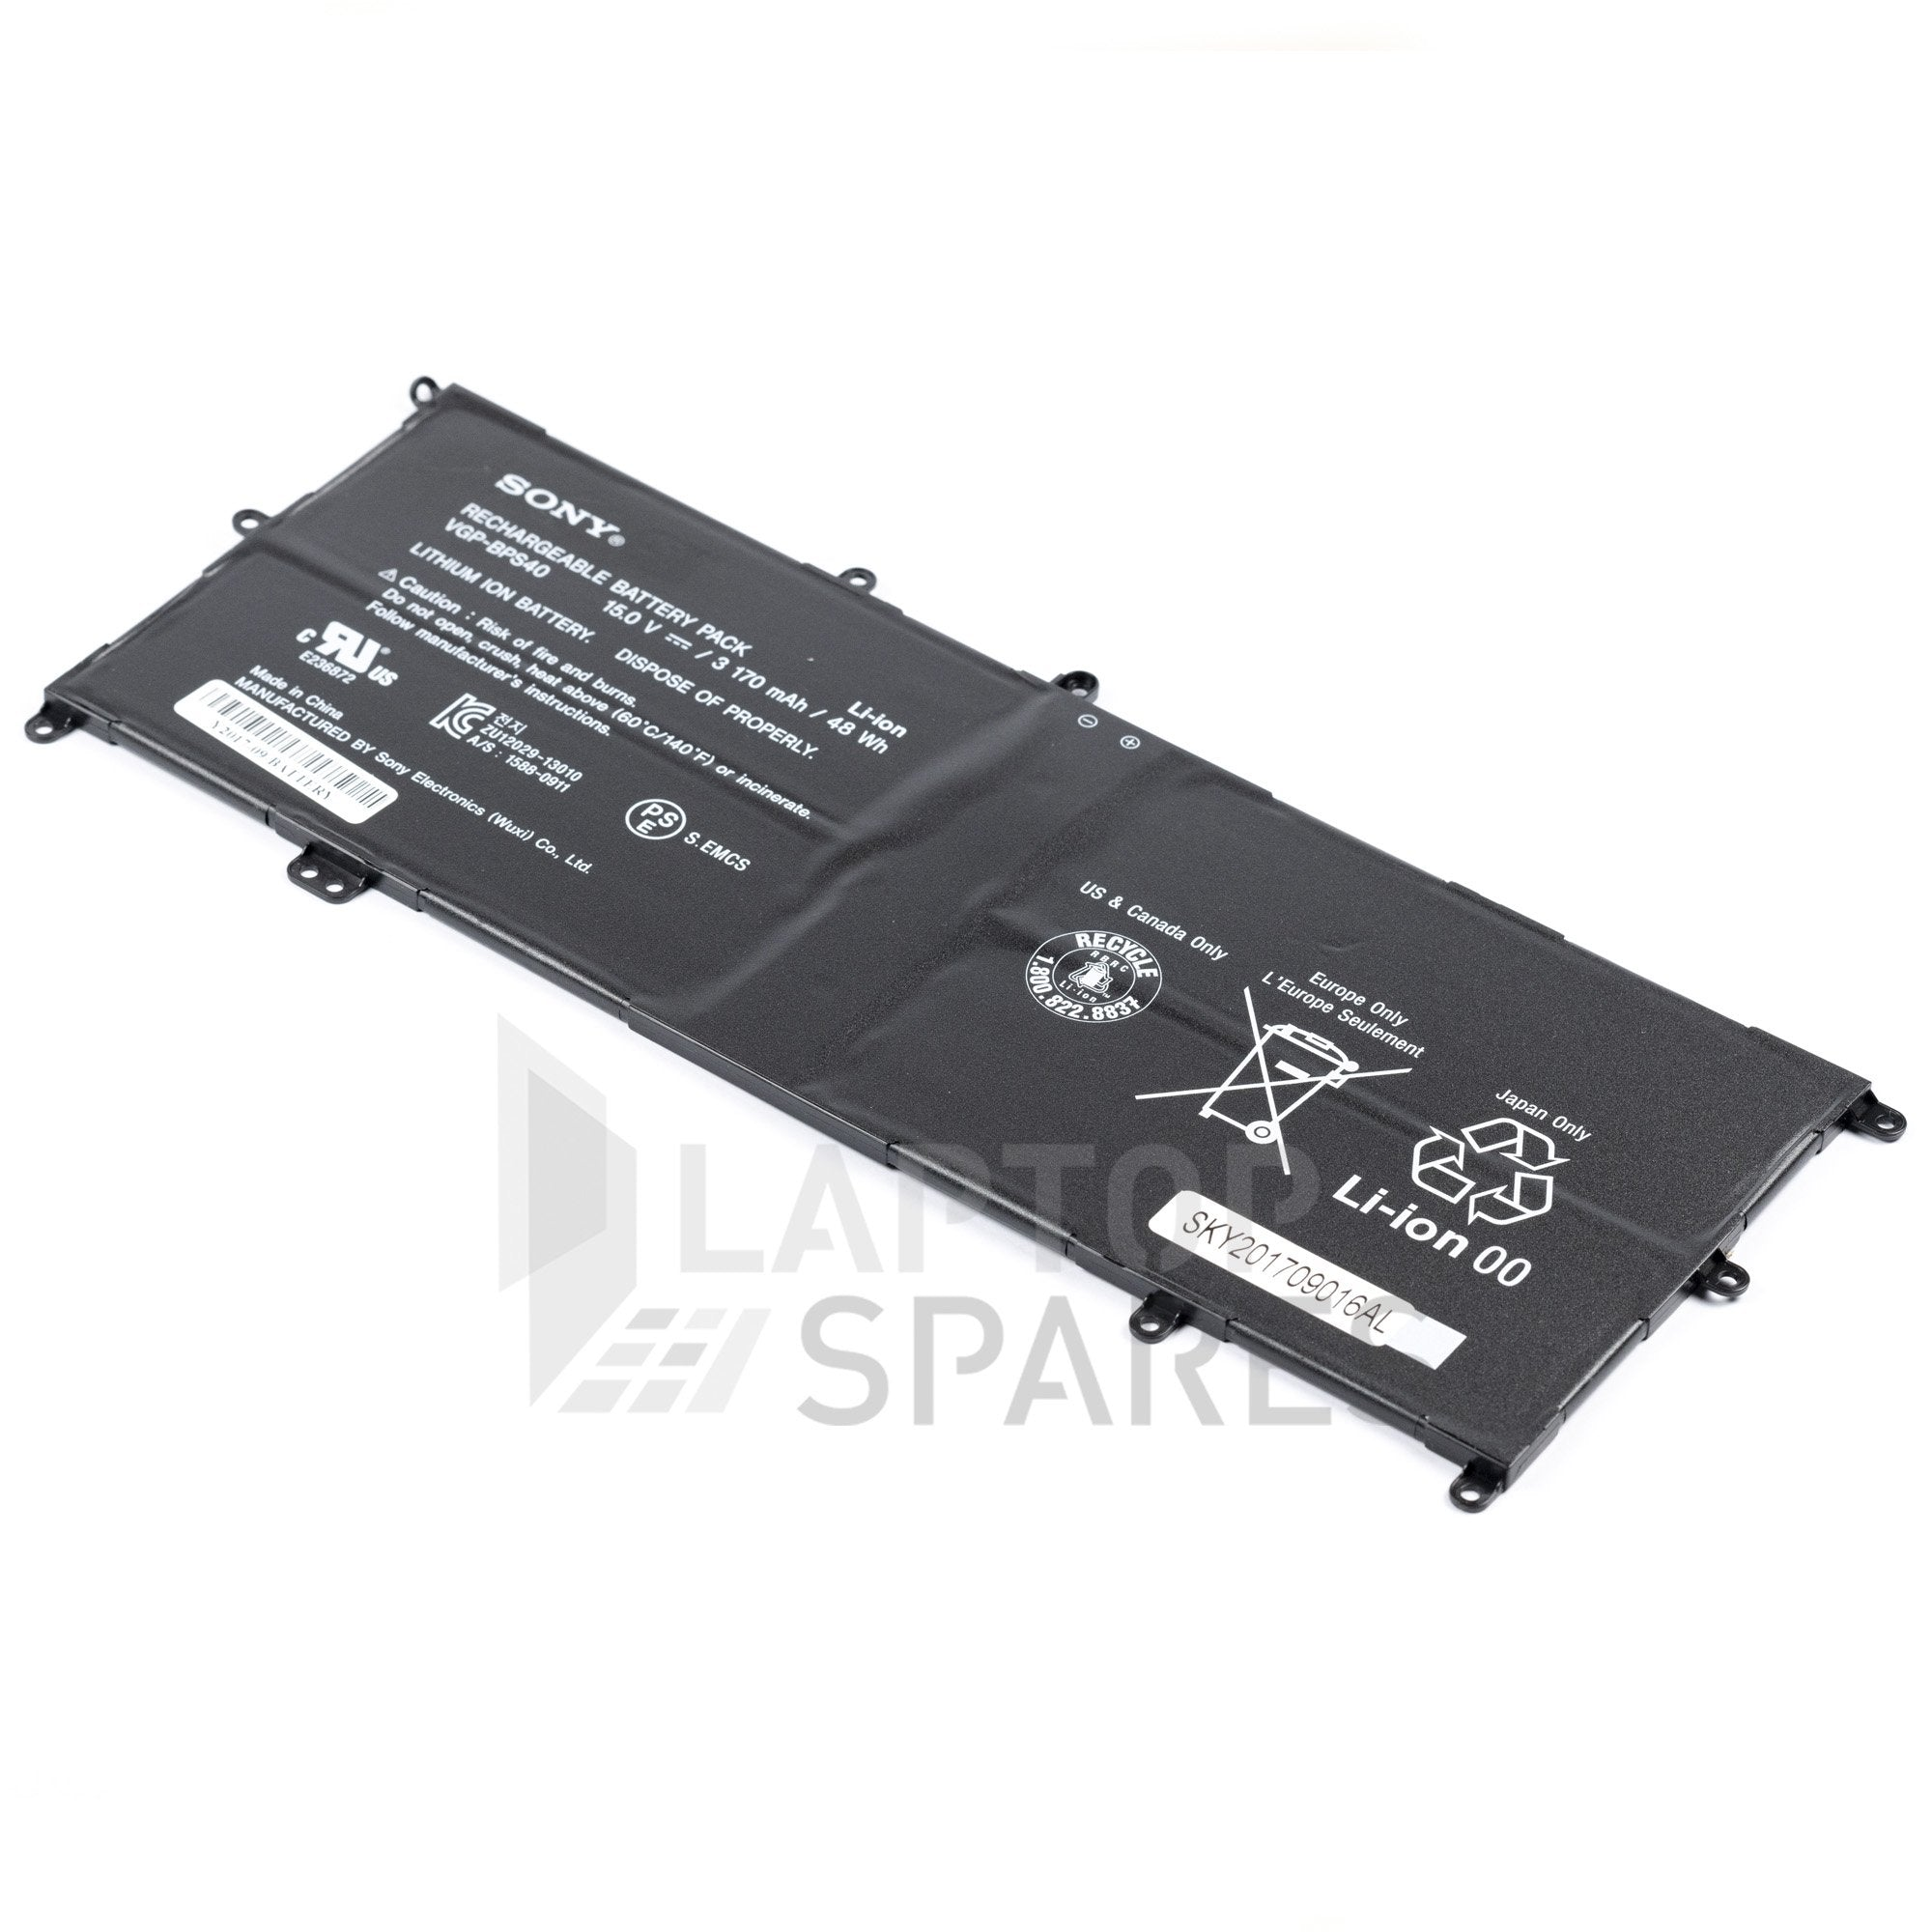 Sony Vaio SVF15N26CXB 3170mAh Battery